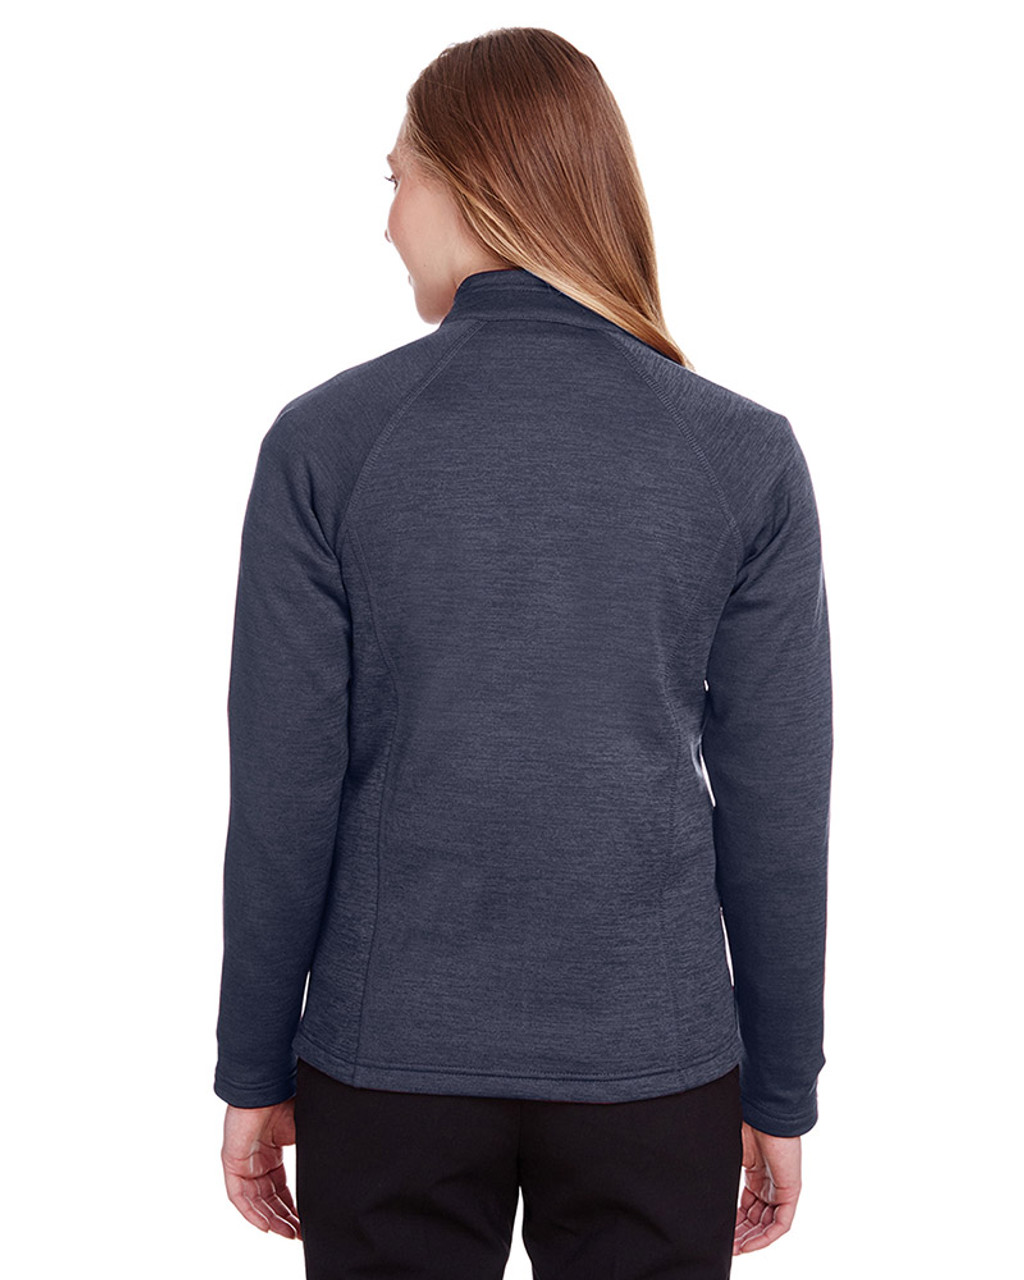 Classic Navy Heather/Carbon - back, NE712W Ash City - North End Ladies Flux 2.0 Full-Zip Jacket   Blankclothing.ca